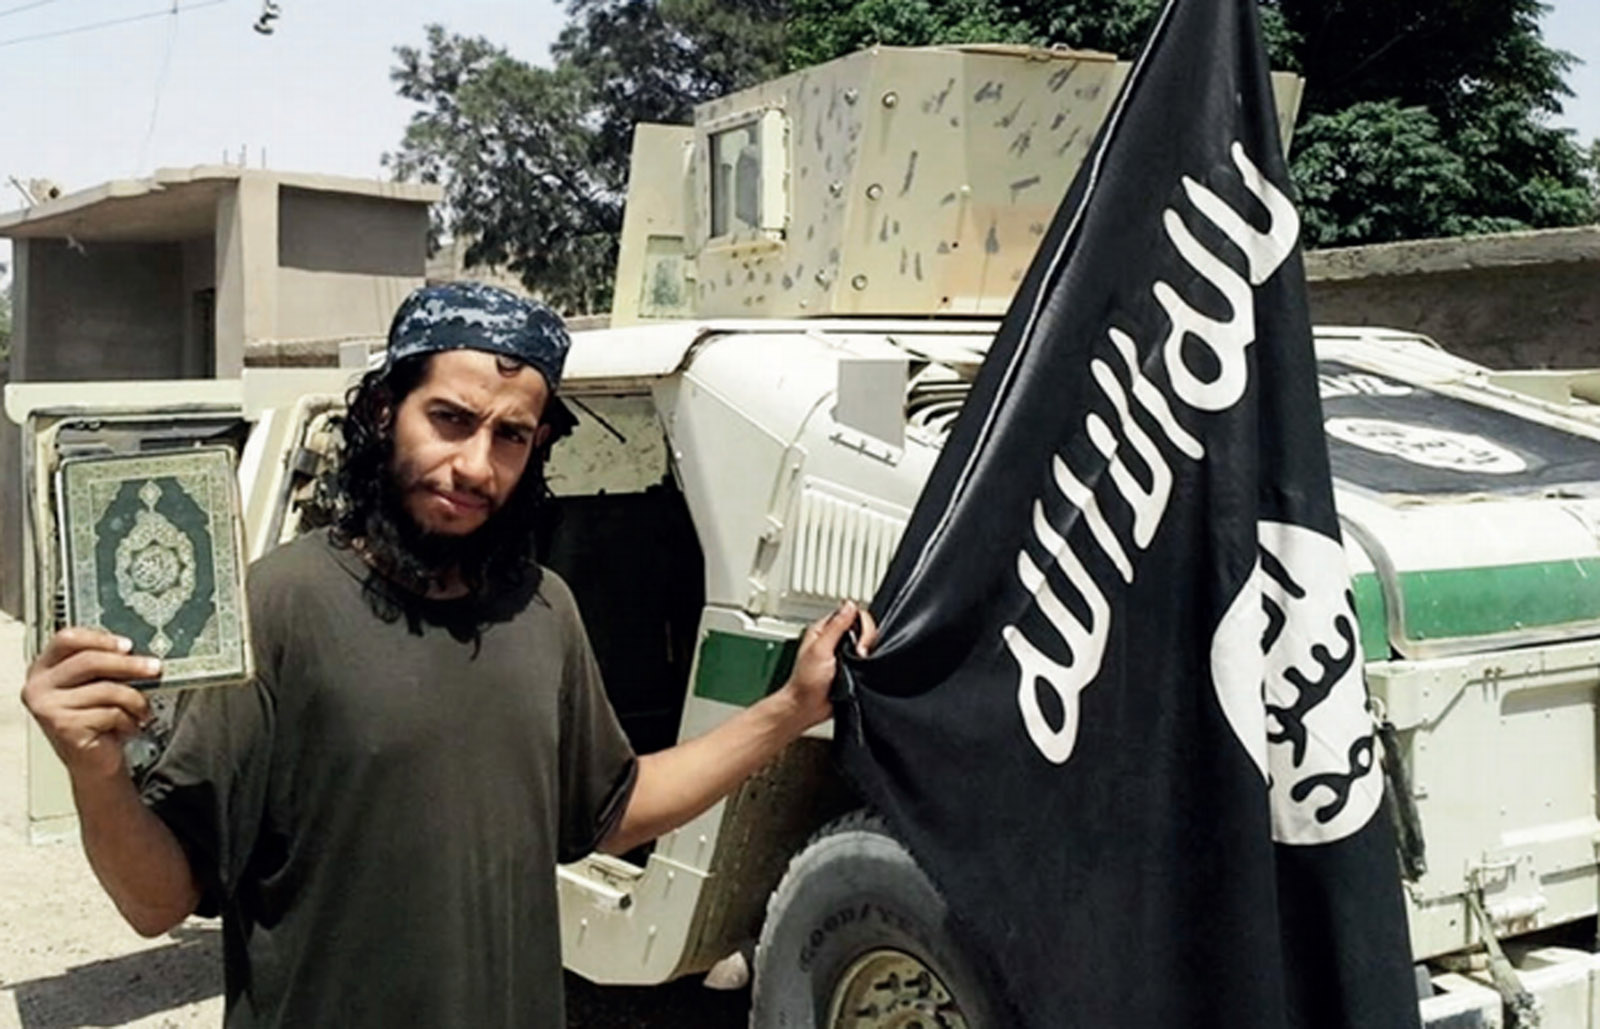 Alleged architect of Paris attacks was known to U.S. intelligence